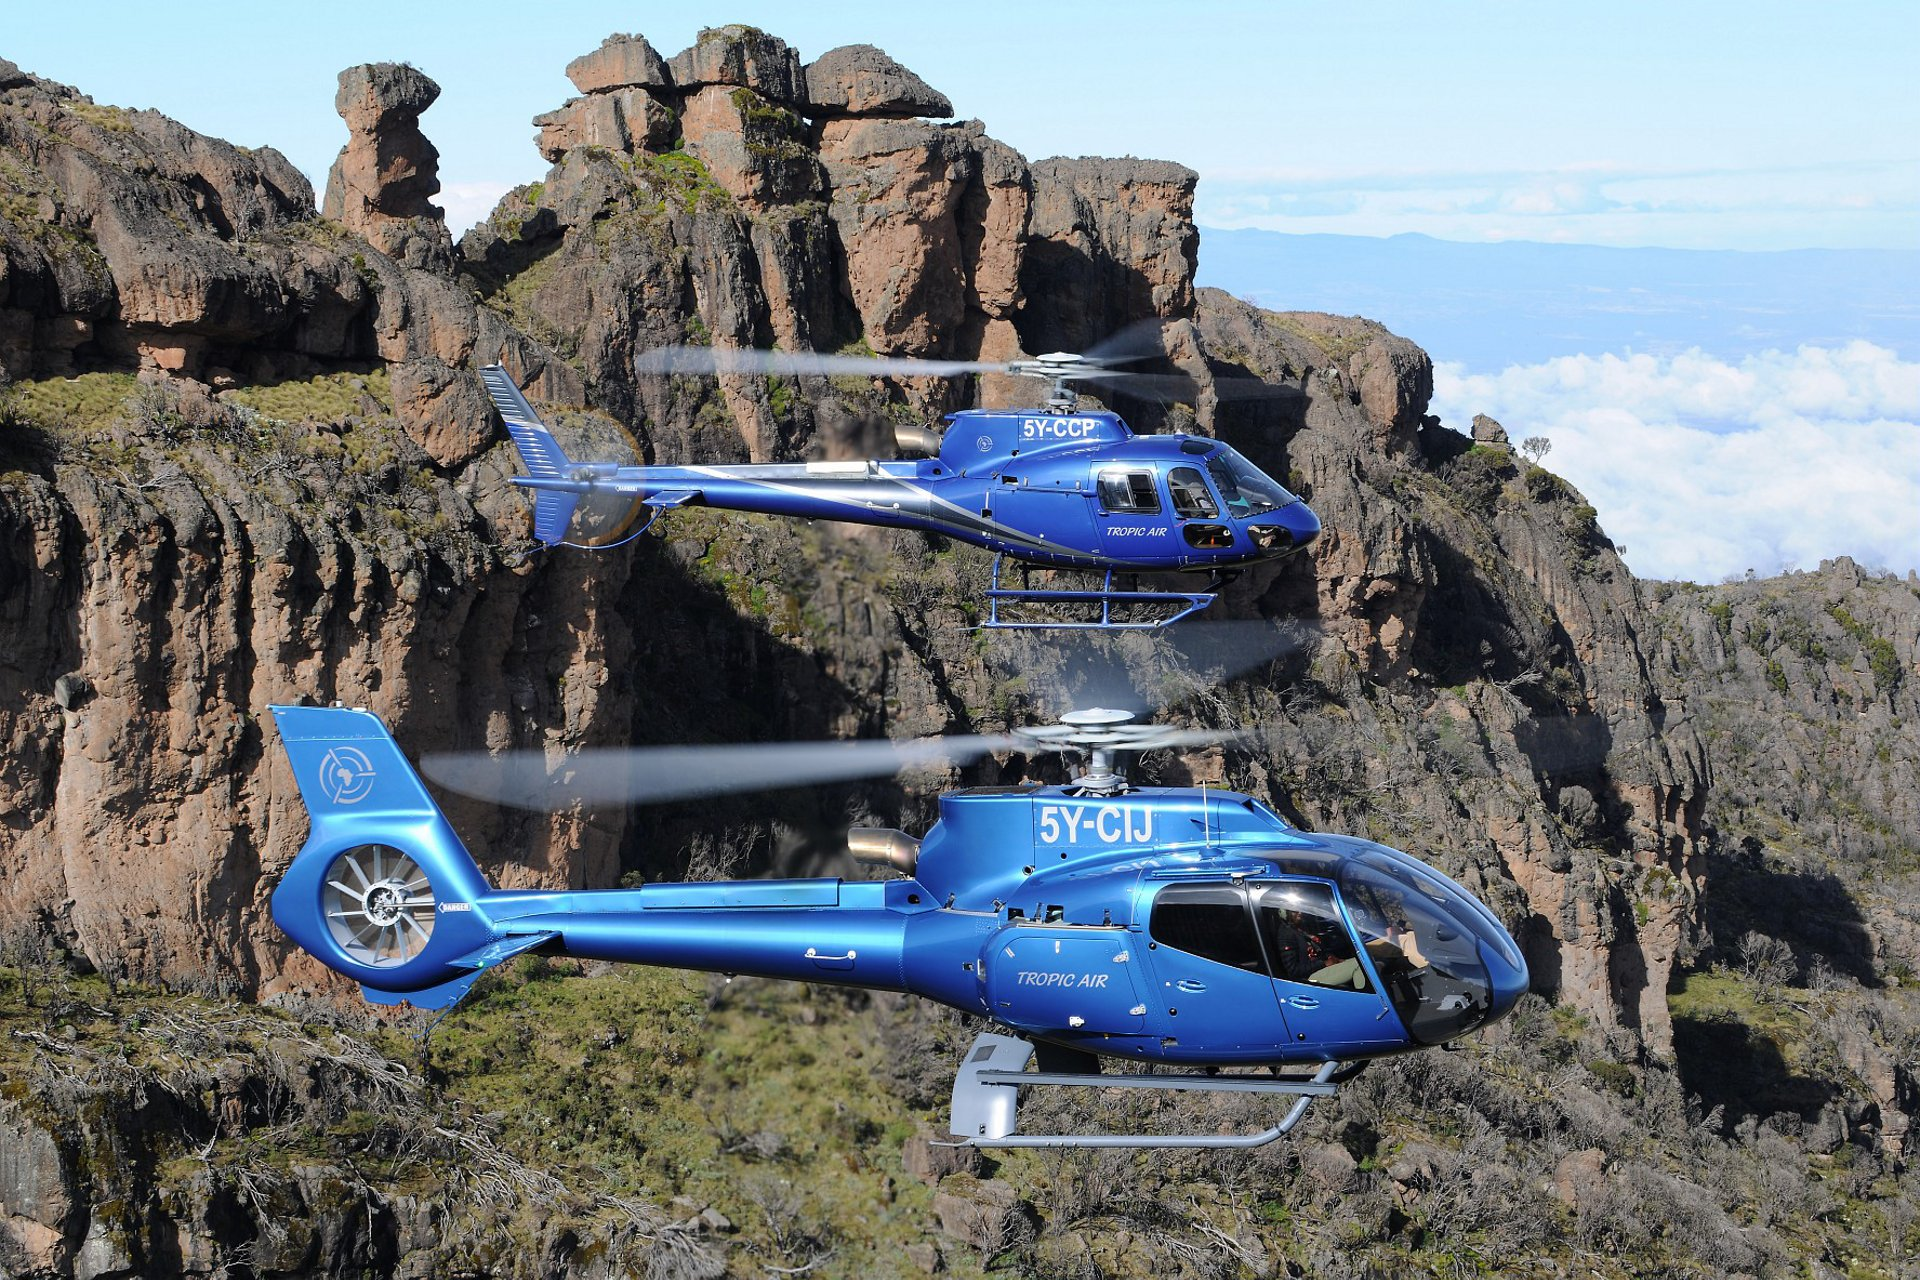 The H125 and H130 on Mount Kenya.